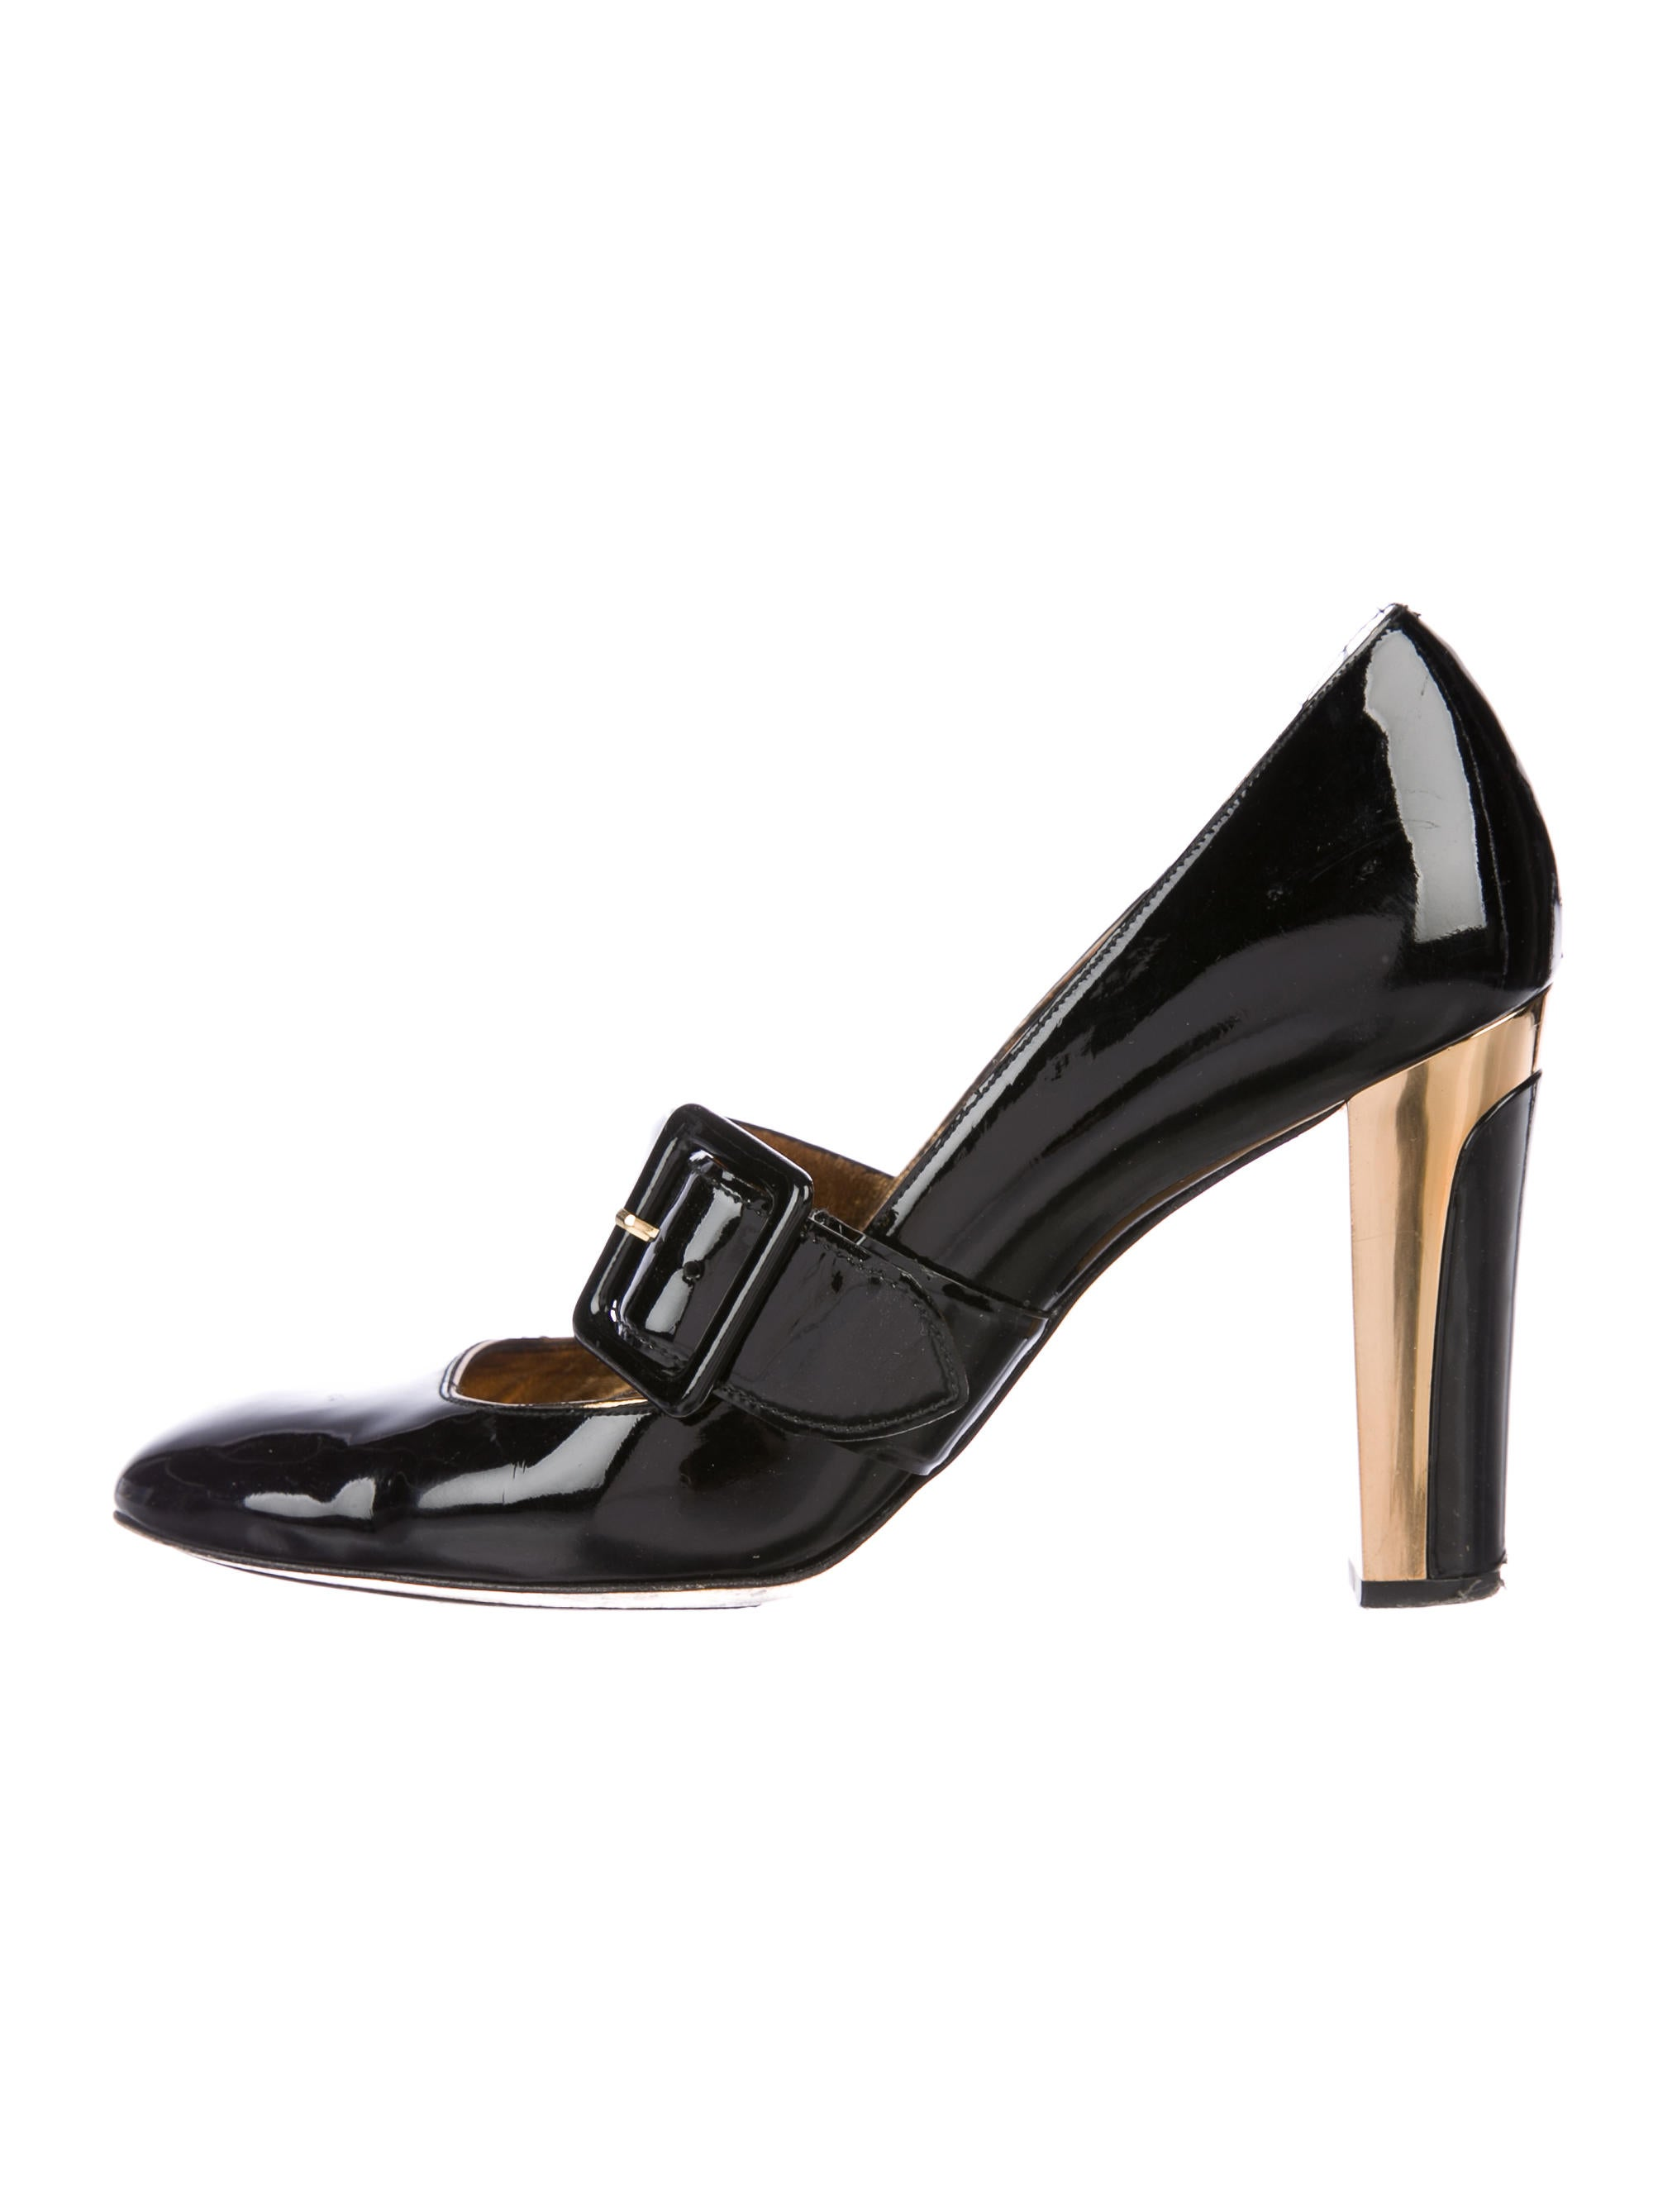 Inexpensive sale online cheap USA stockist Barbara Bui Patent Leather Mary Jane Pumps discount Inexpensive for sale very cheap in China cheap price 0A4h2lYK